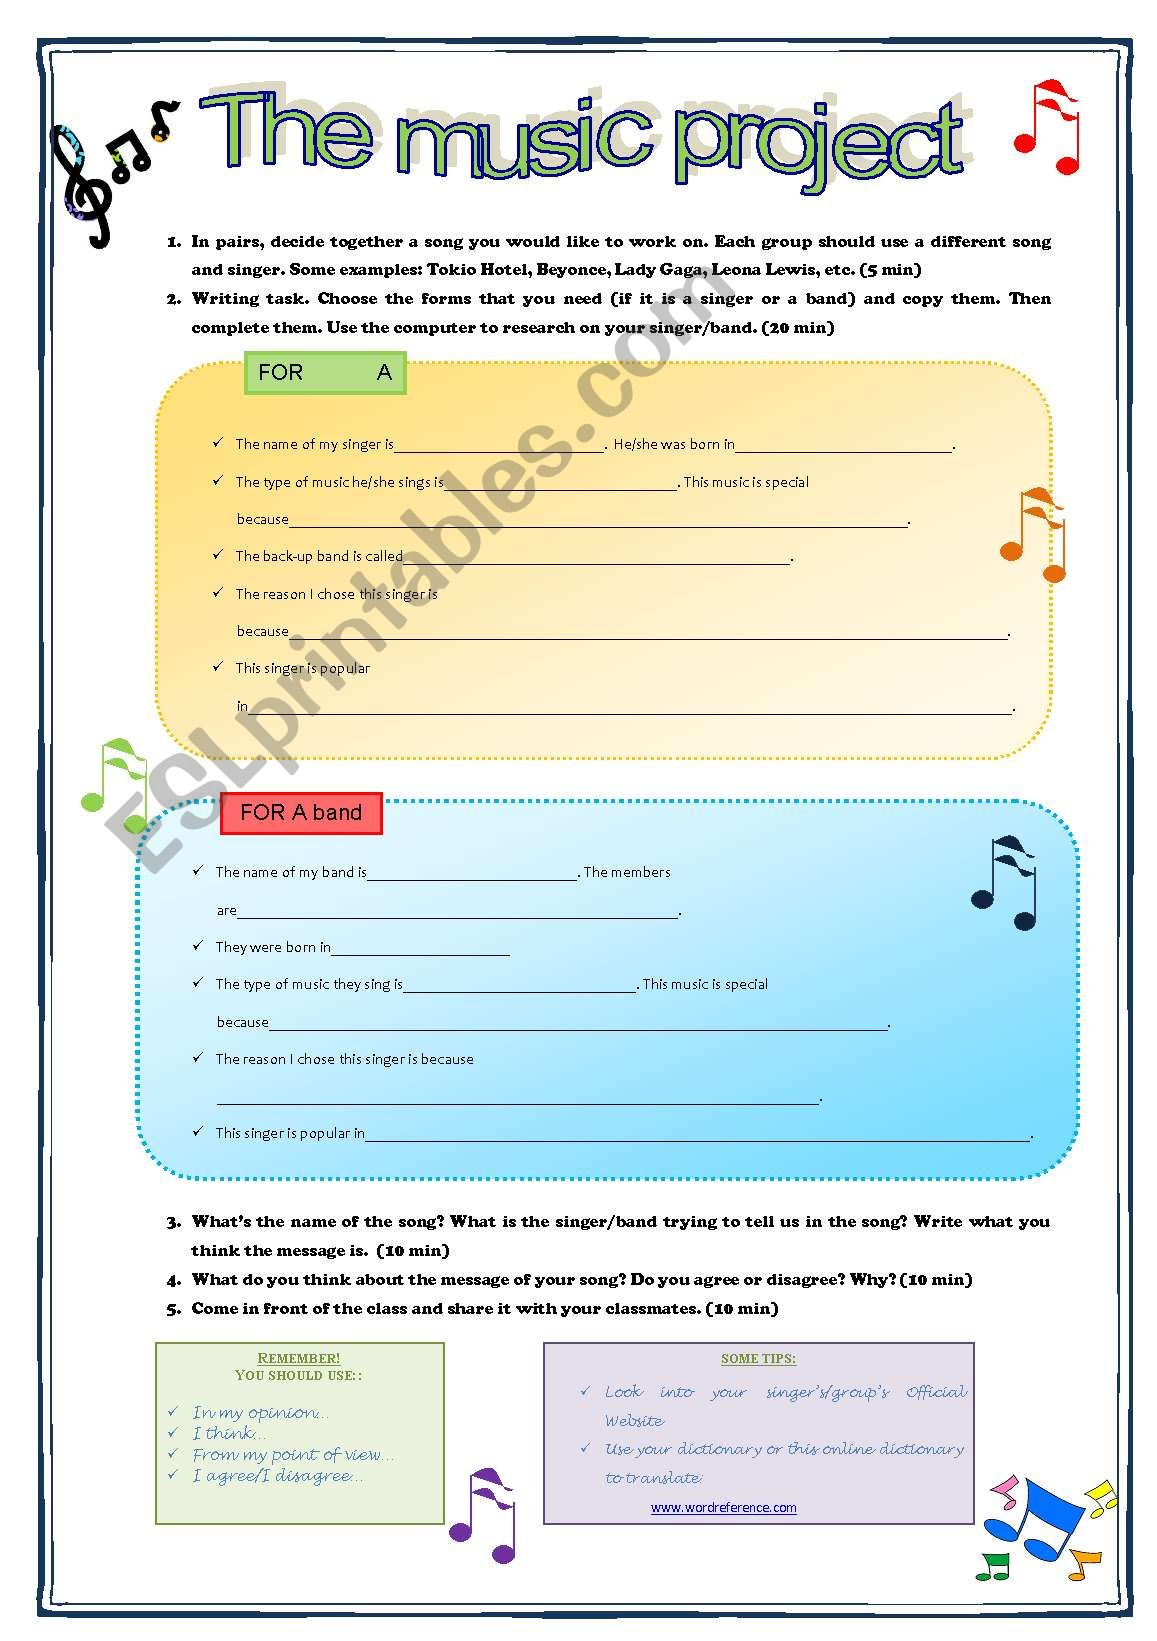 The Music Project worksheet